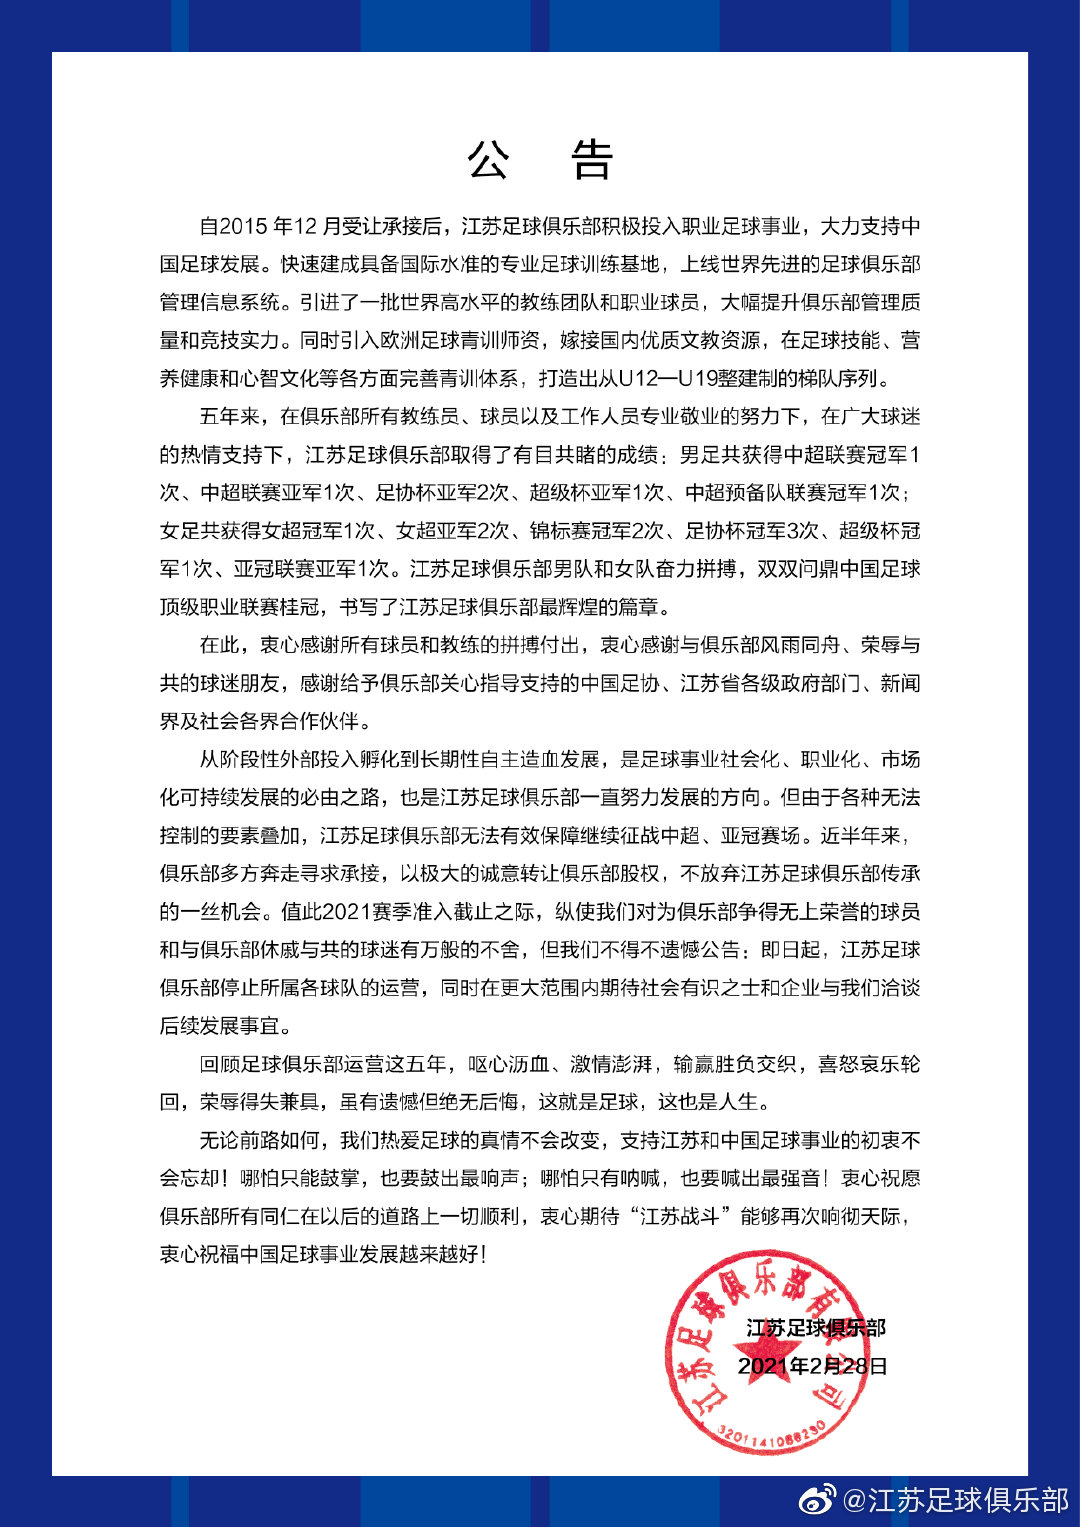 Chen Xuyuan: Confident in qualifying for the top 40 of the National Football Team, responding to Suning TEDA's withdrawal(1)